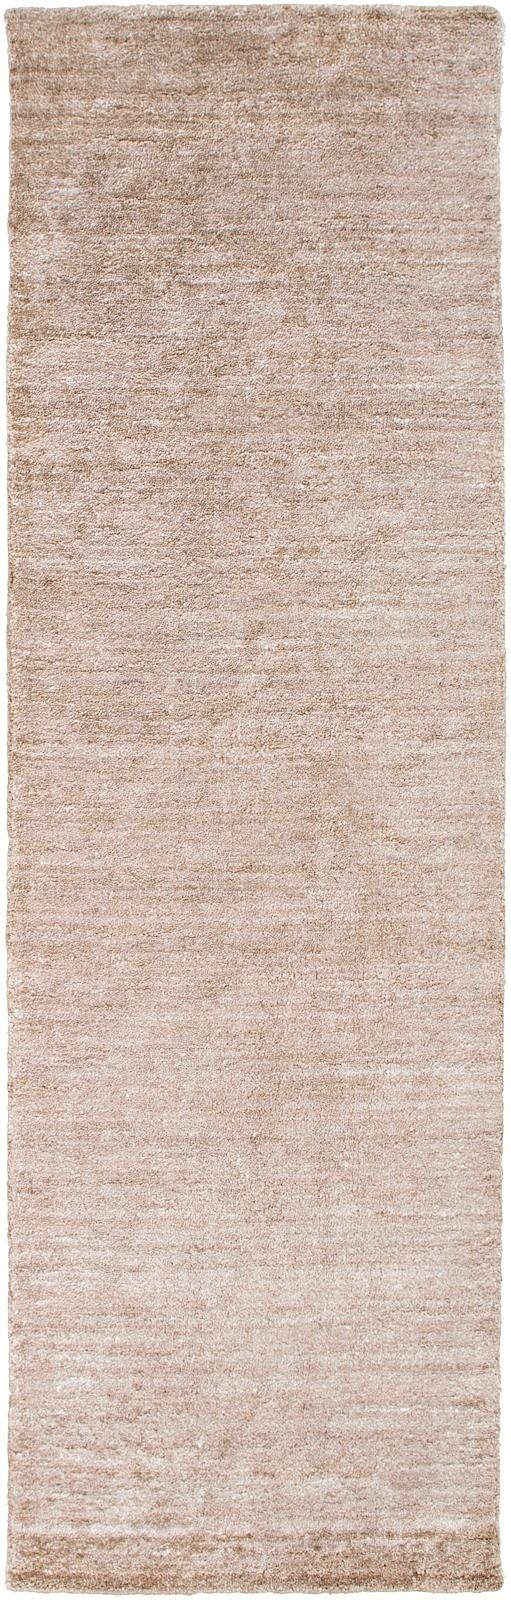 surya haize solid/striped area rug collection